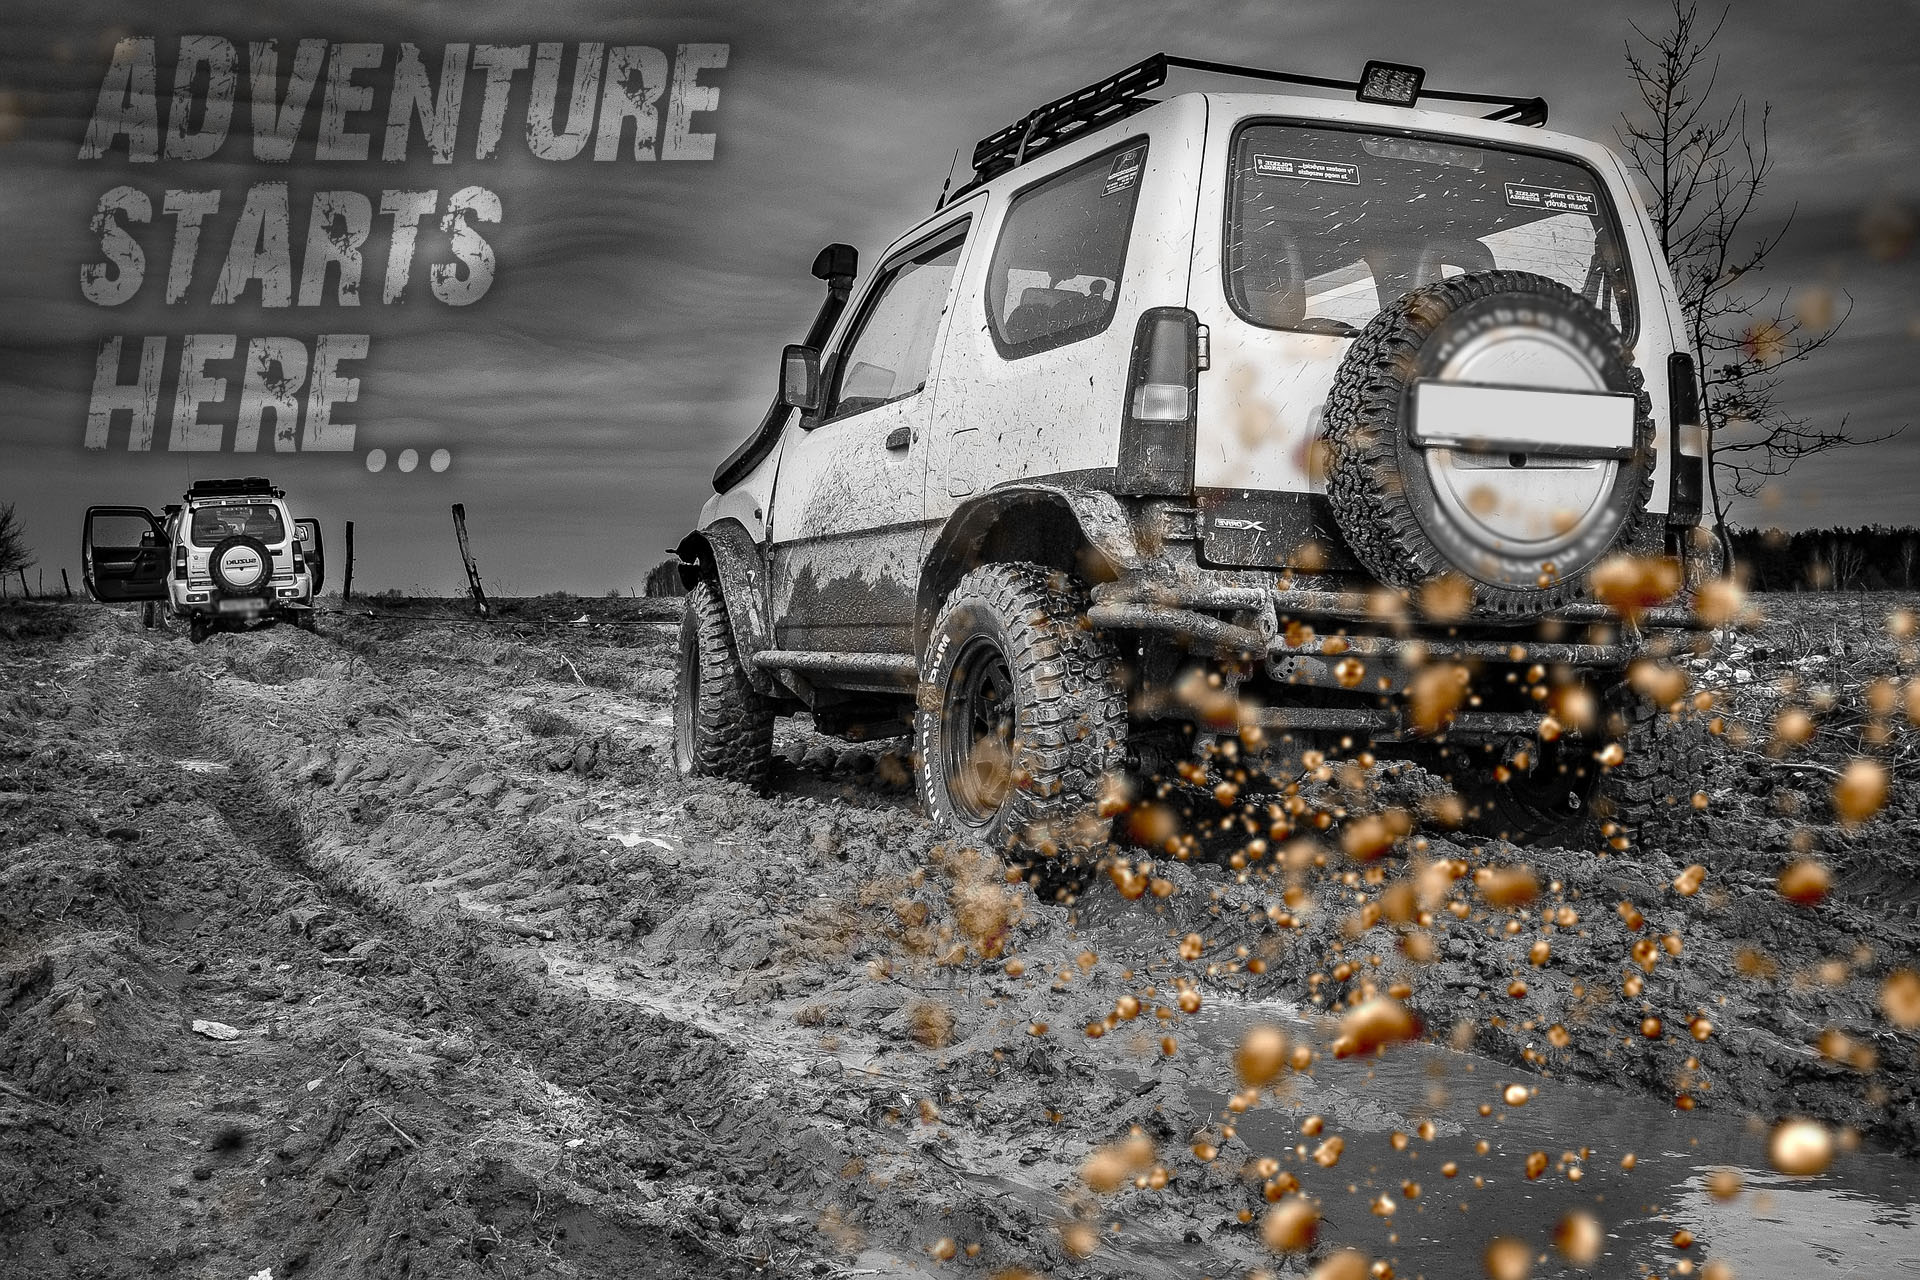 Crc 4x4 Offroad Home Image Main 3